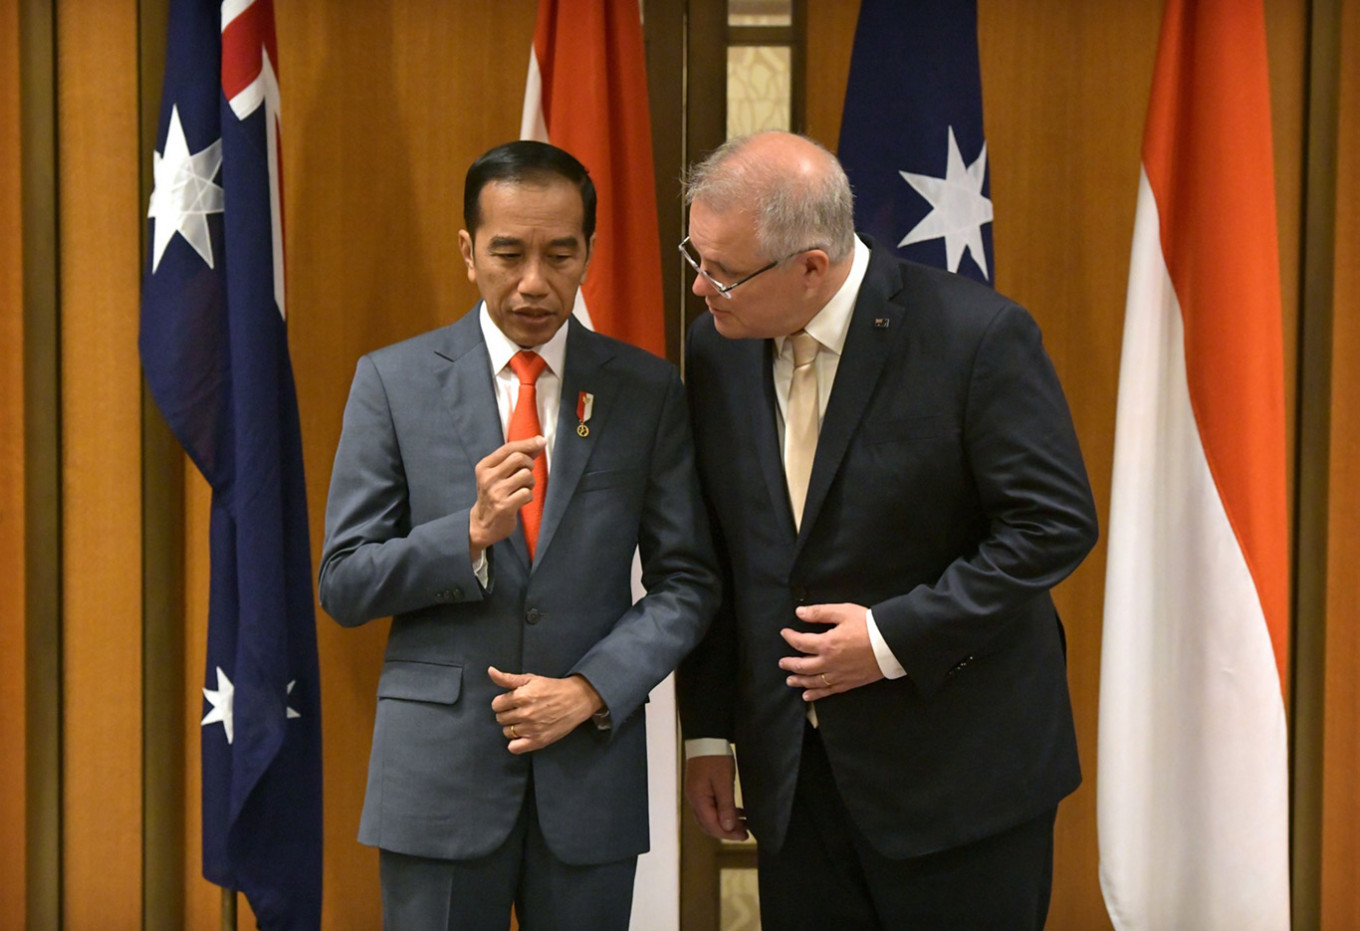 Australia pours out $4.2 million in aid for Indonesia's COVID-19 response through WHO